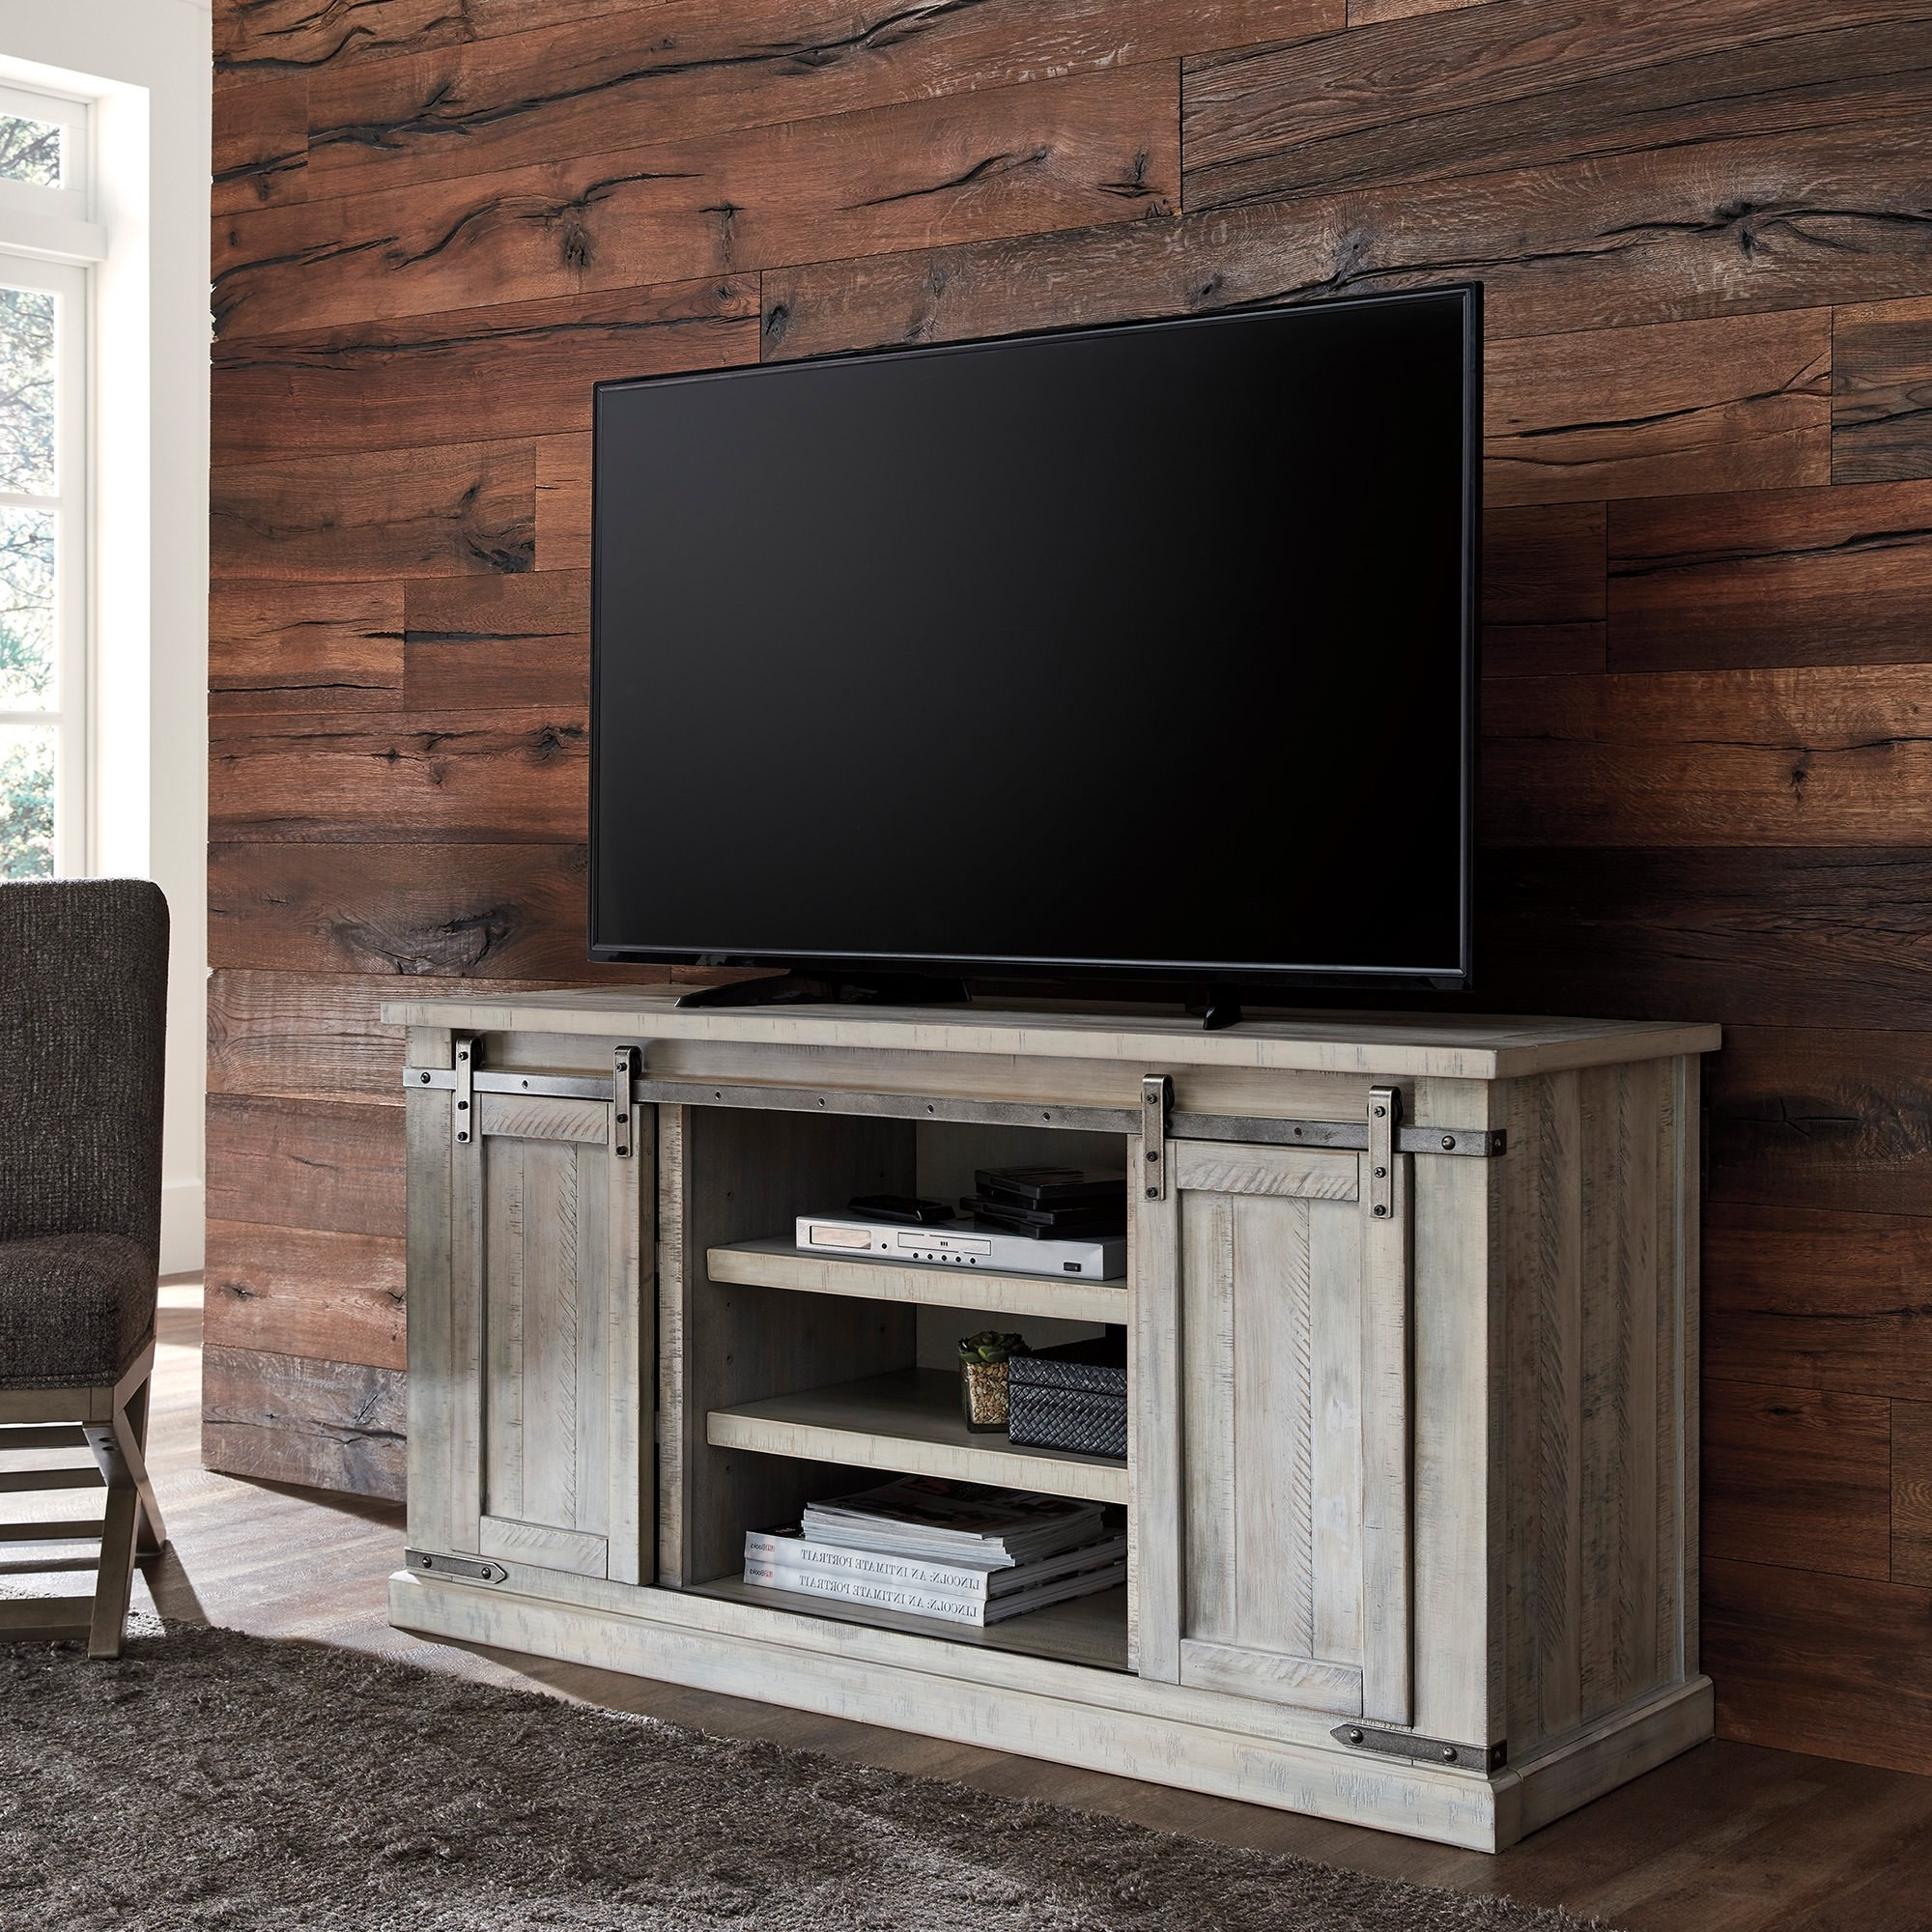 """Well Liked Carynhurst Large 60 Inch Tv Stand – Bernie & Phyl's Within Evelynn Tv Stands For Tvs Up To 60"""" (View 8 of 25)"""